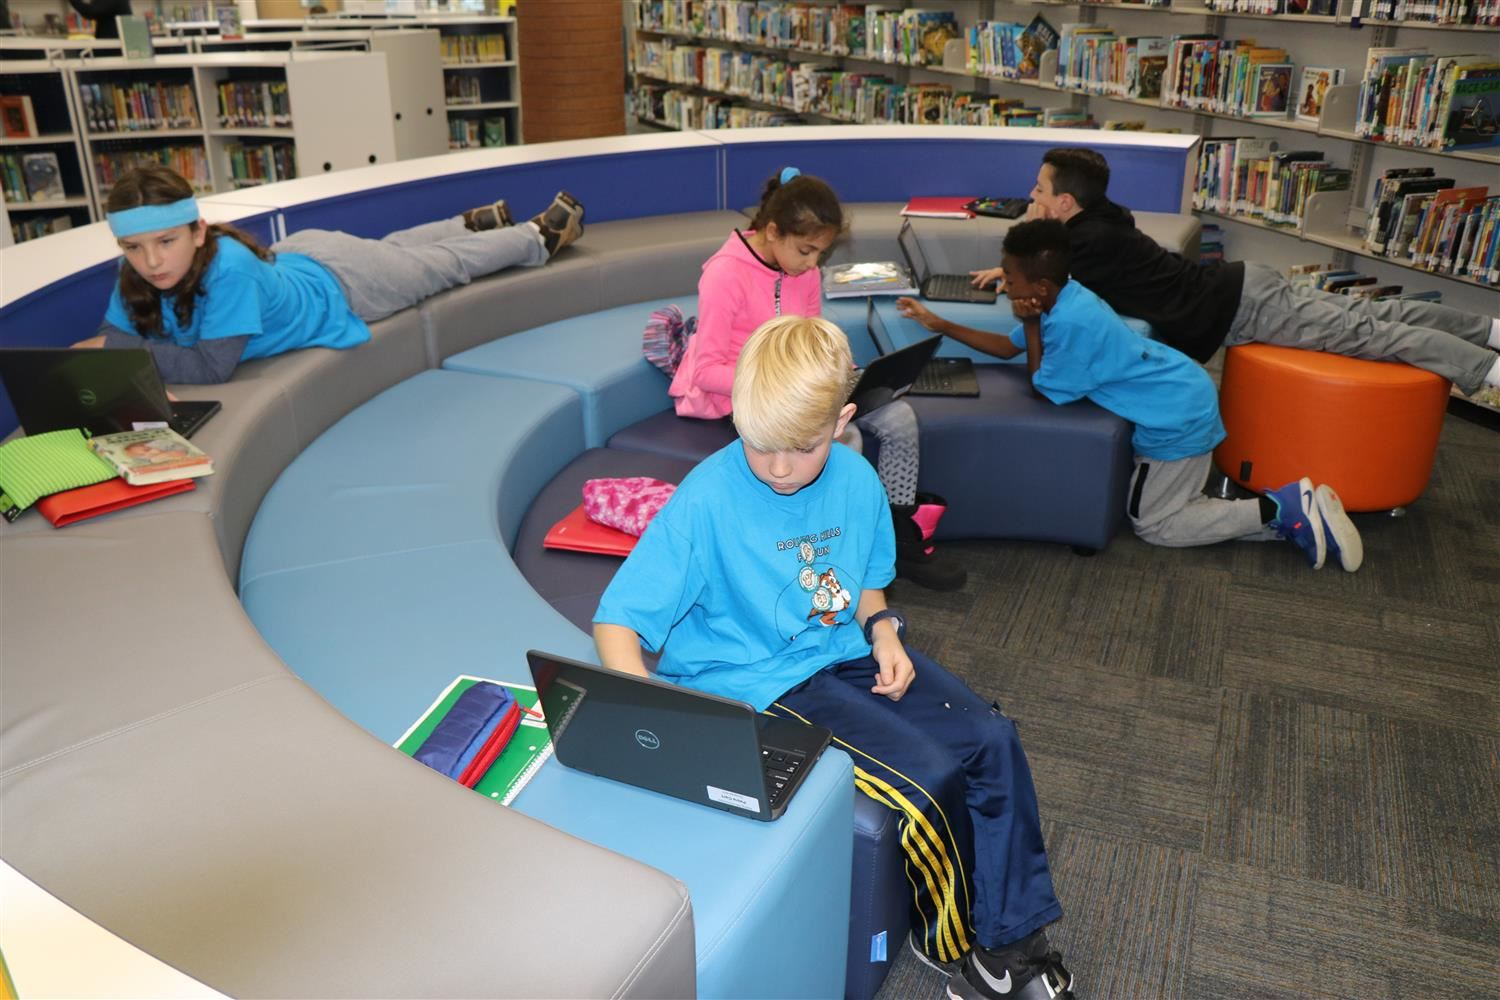 Students spread out in stadium style seating in the school's newly renovated innovation space.